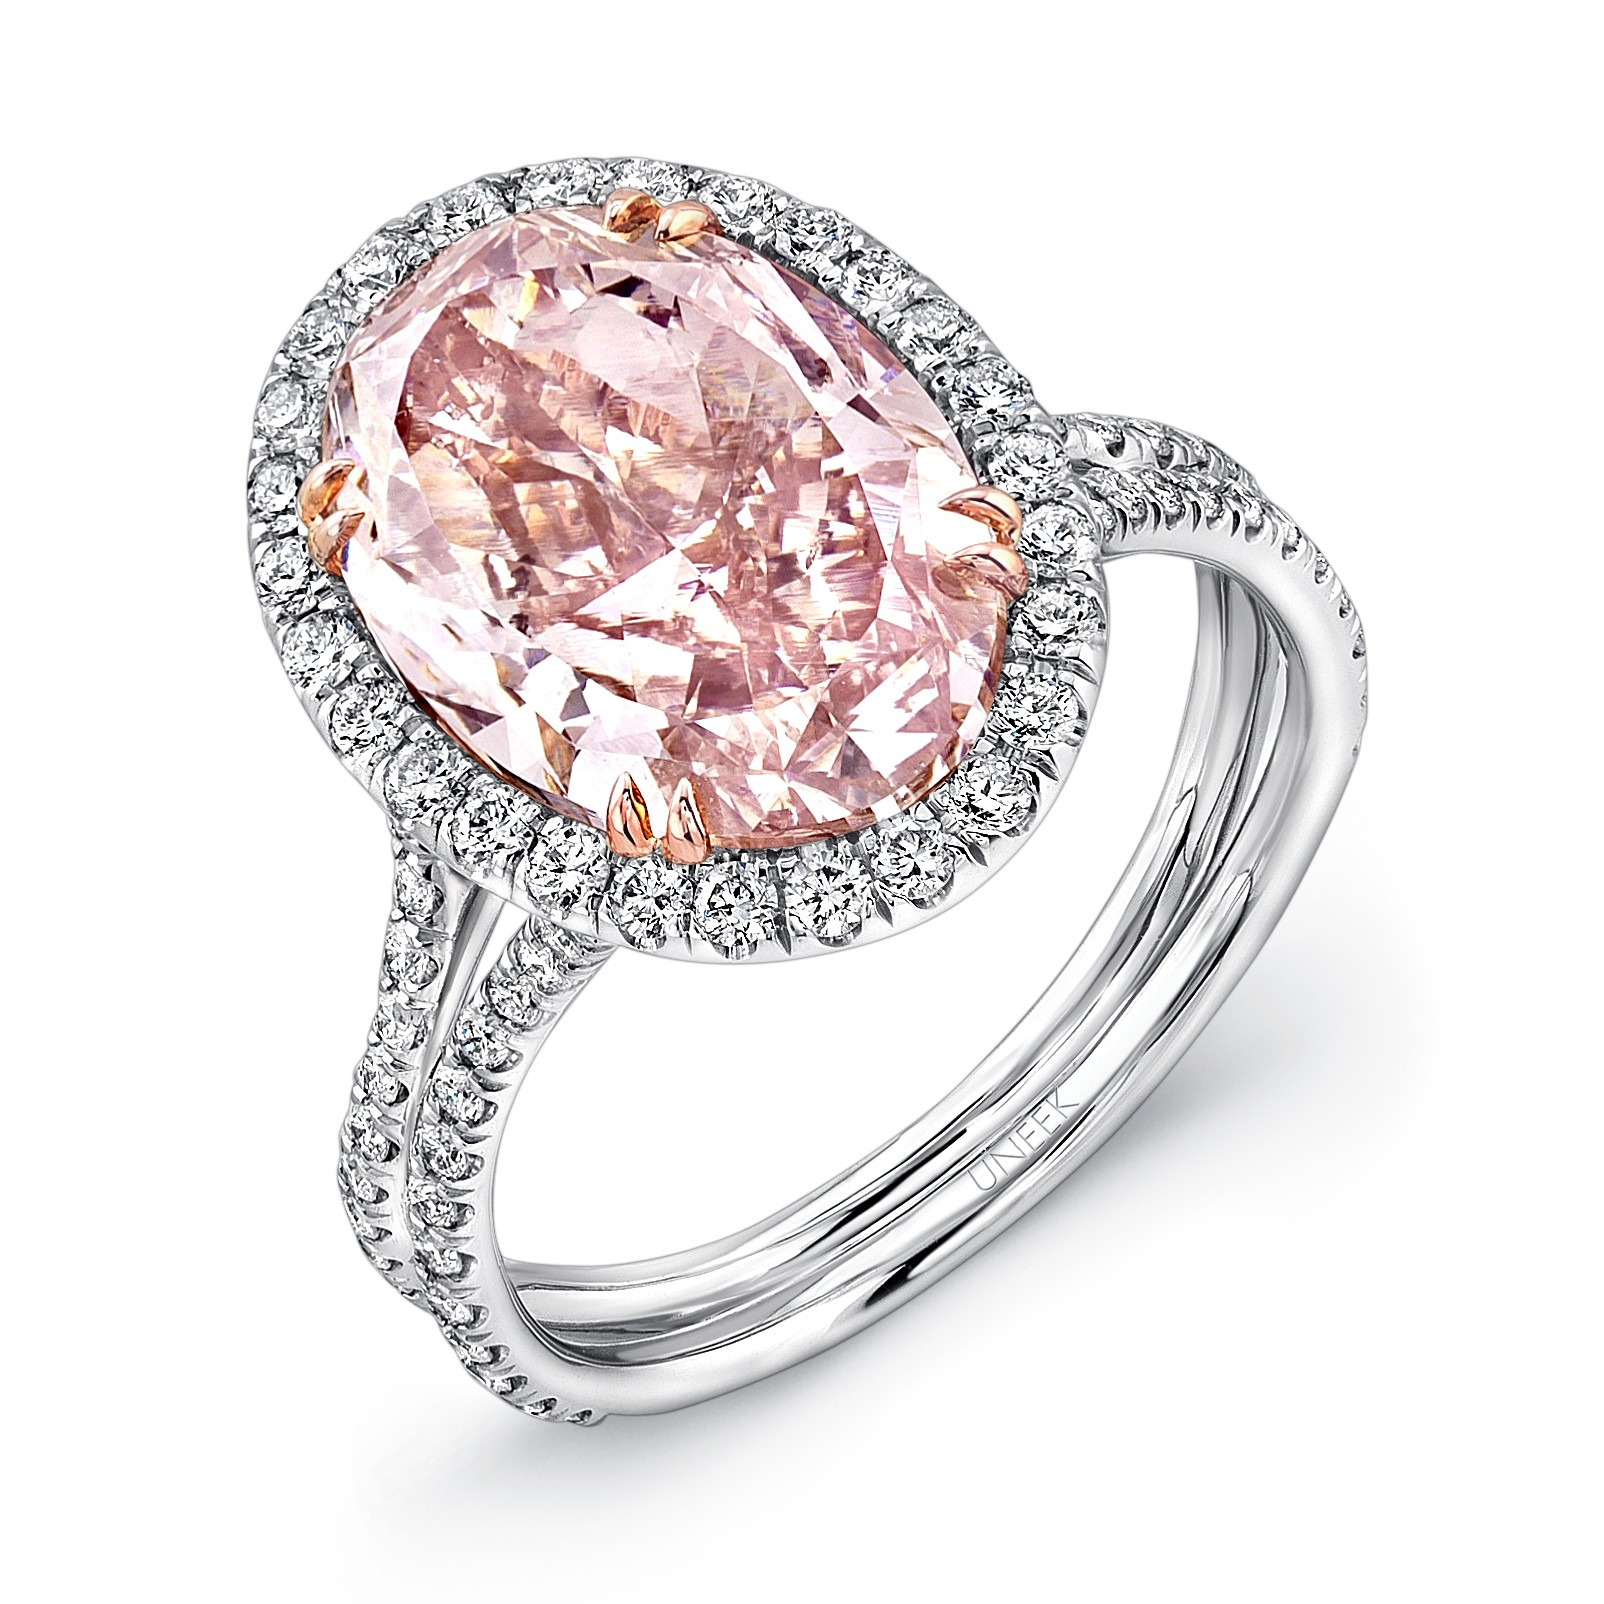 #LVS889 Uneek Oval Fancy Brown Pink Diamond Halo Engagement Ring with